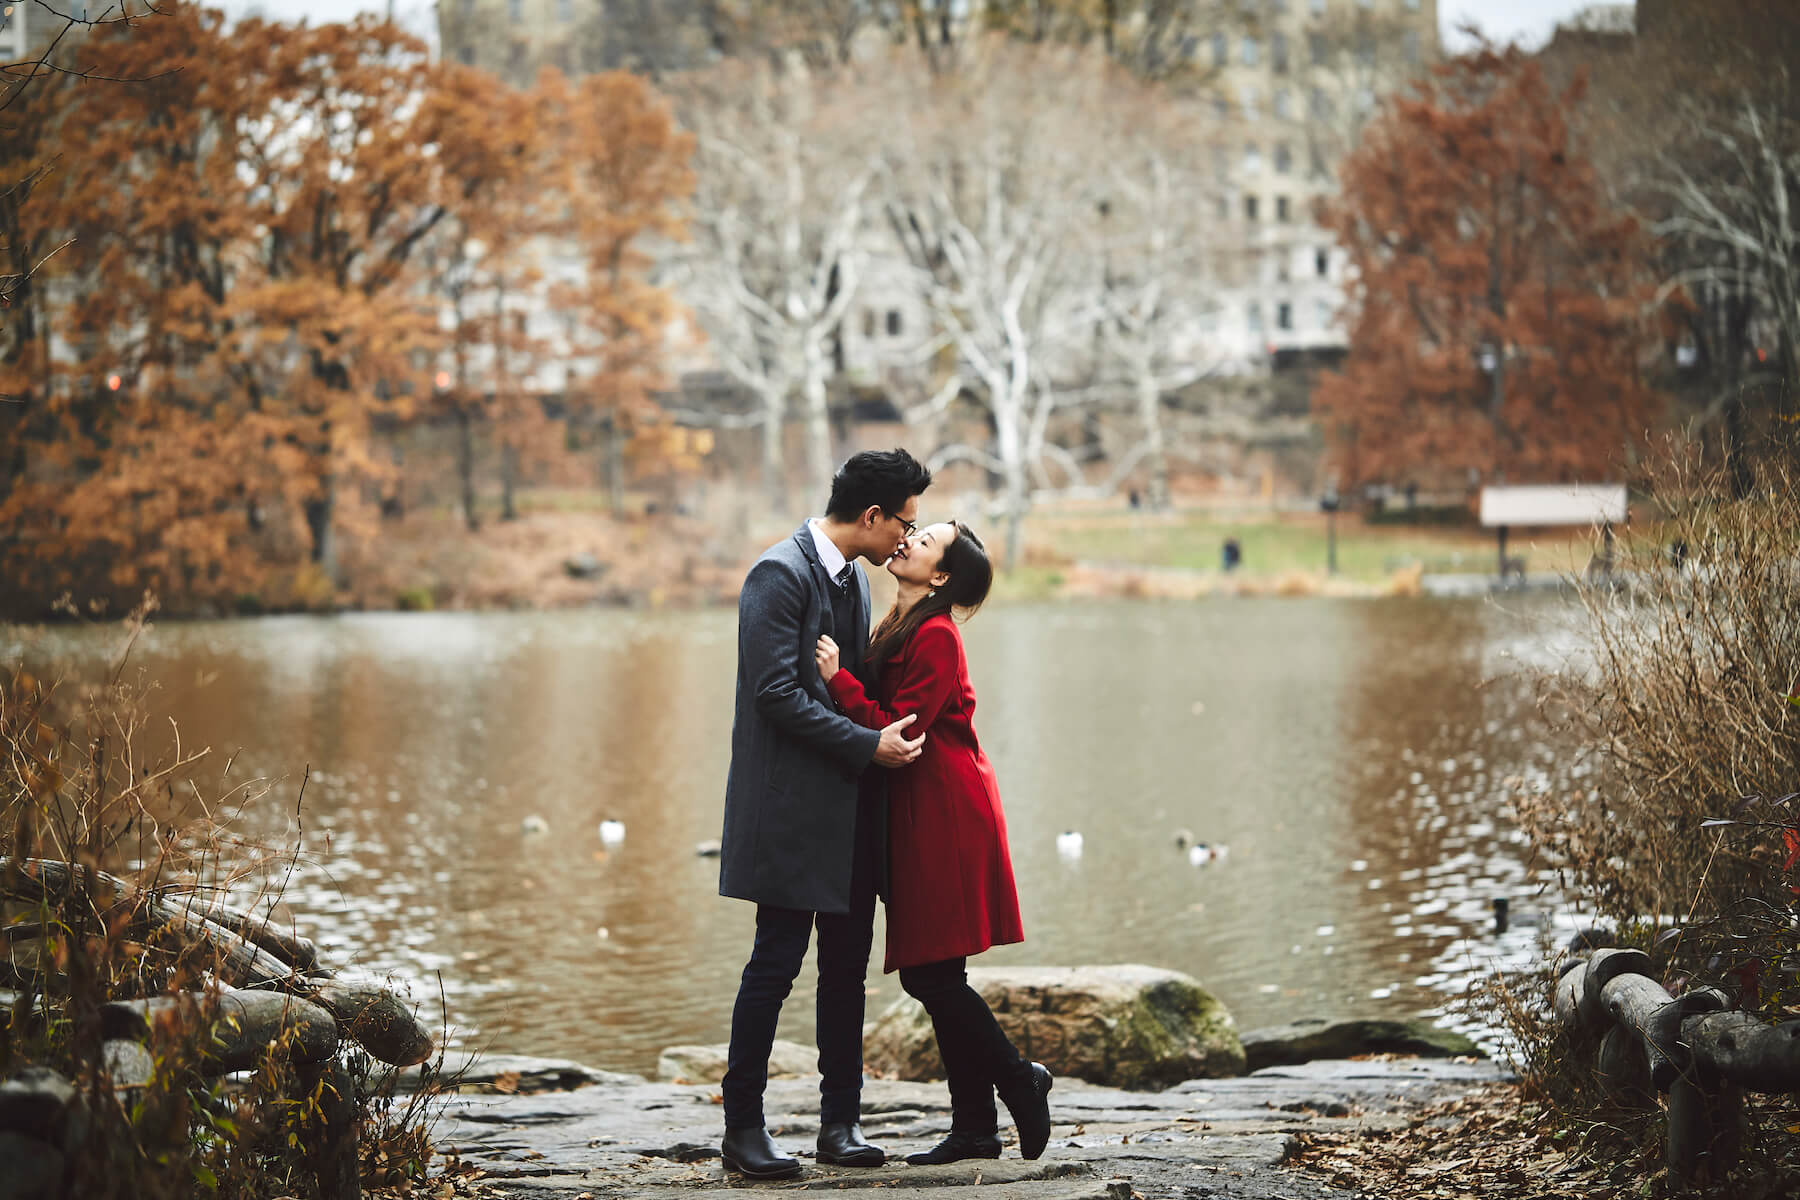 Couple holding each other and kissing in central park, New York City, New York